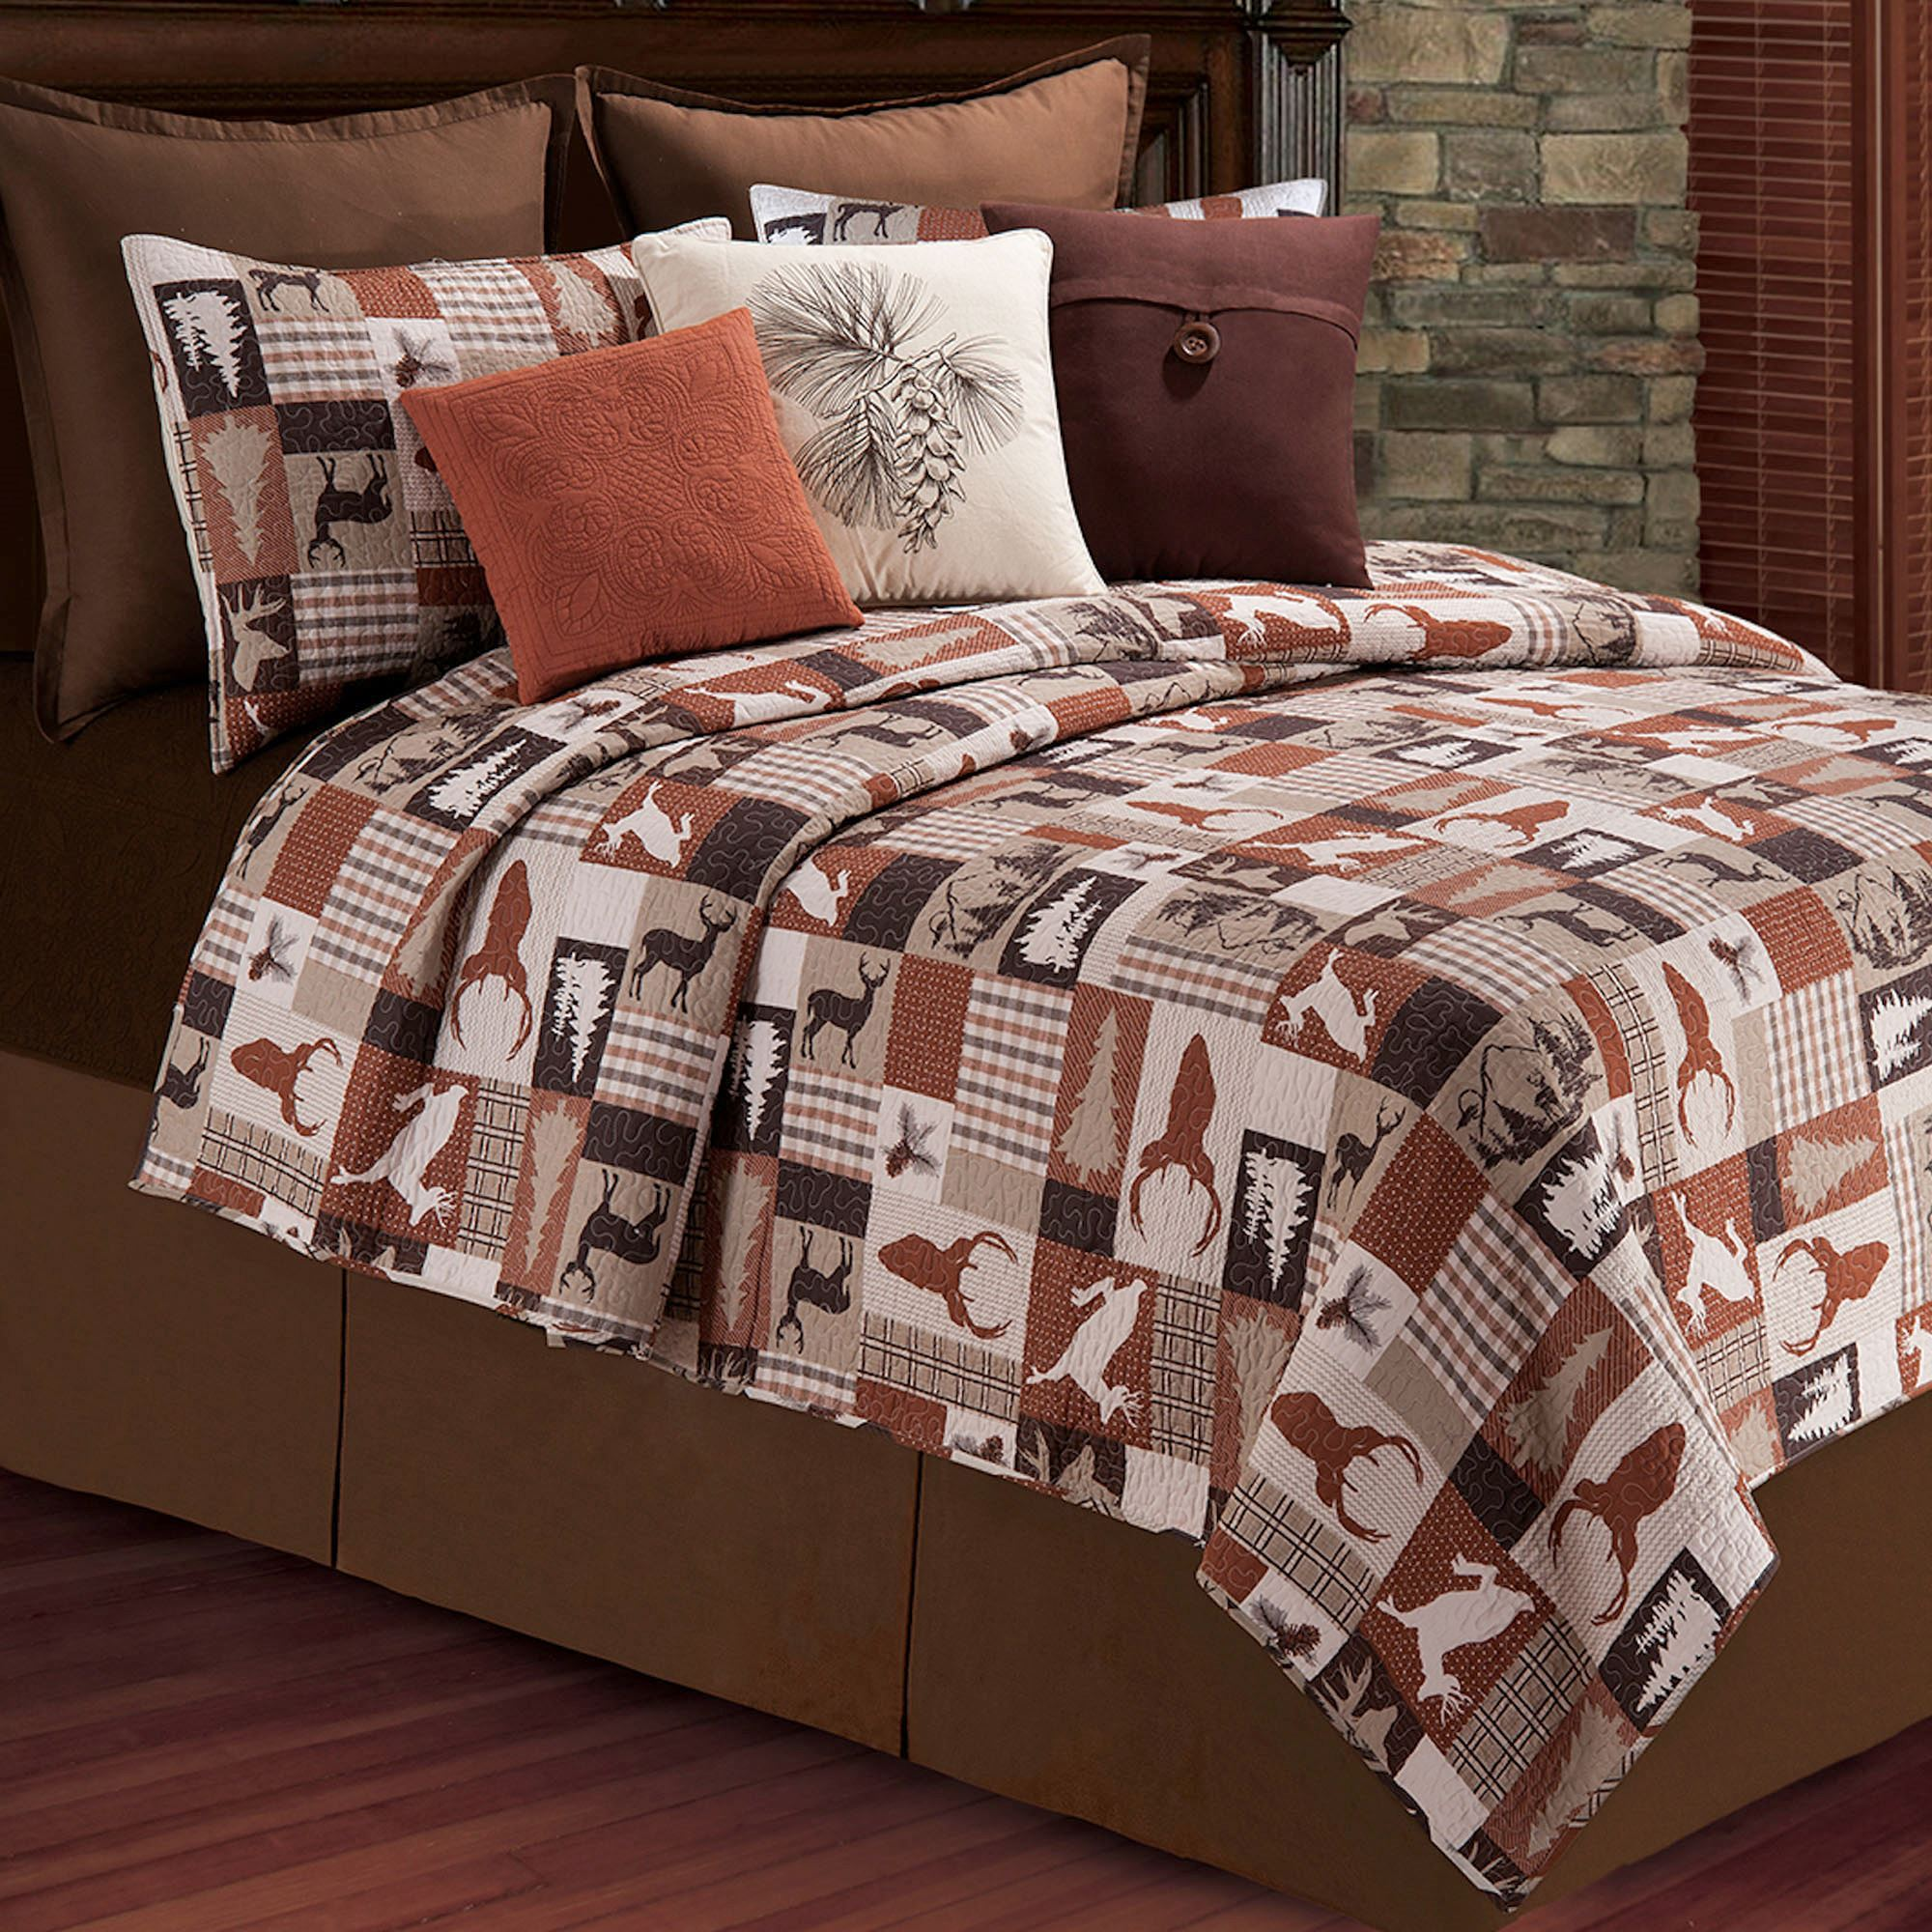 quilt moose cabin mountain bedroom comforters rustic bedding and for bedspread log quilts hunting designs sets king decor fishing bed